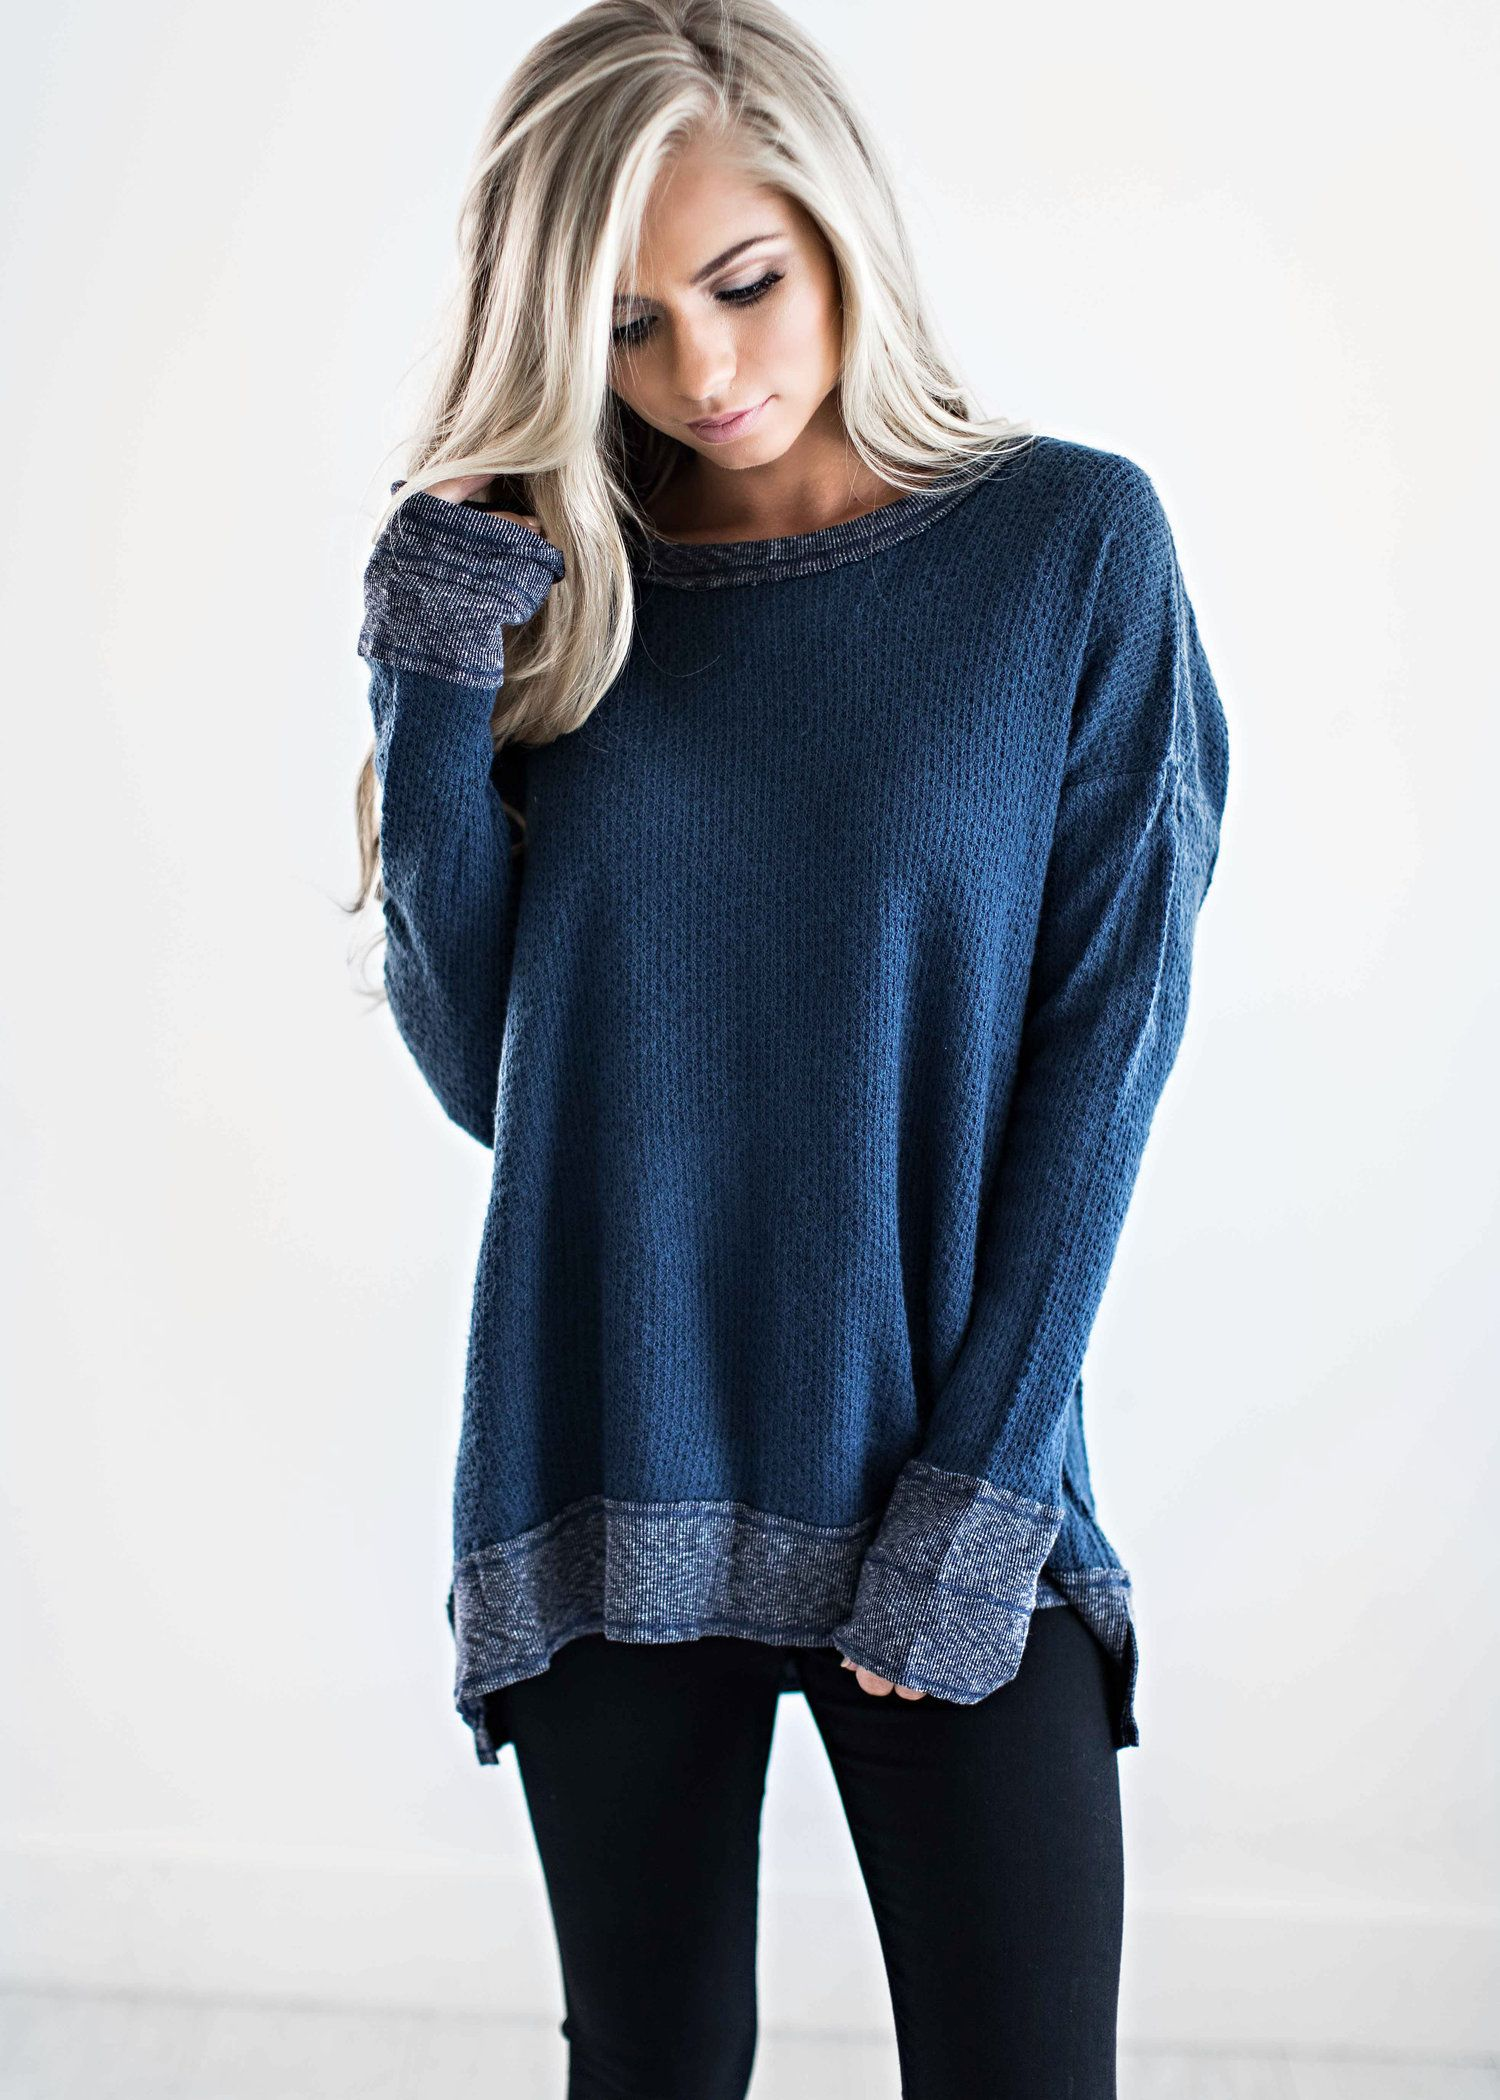 eb630d14a11 Fashion Tips for Mature Women. sweaters